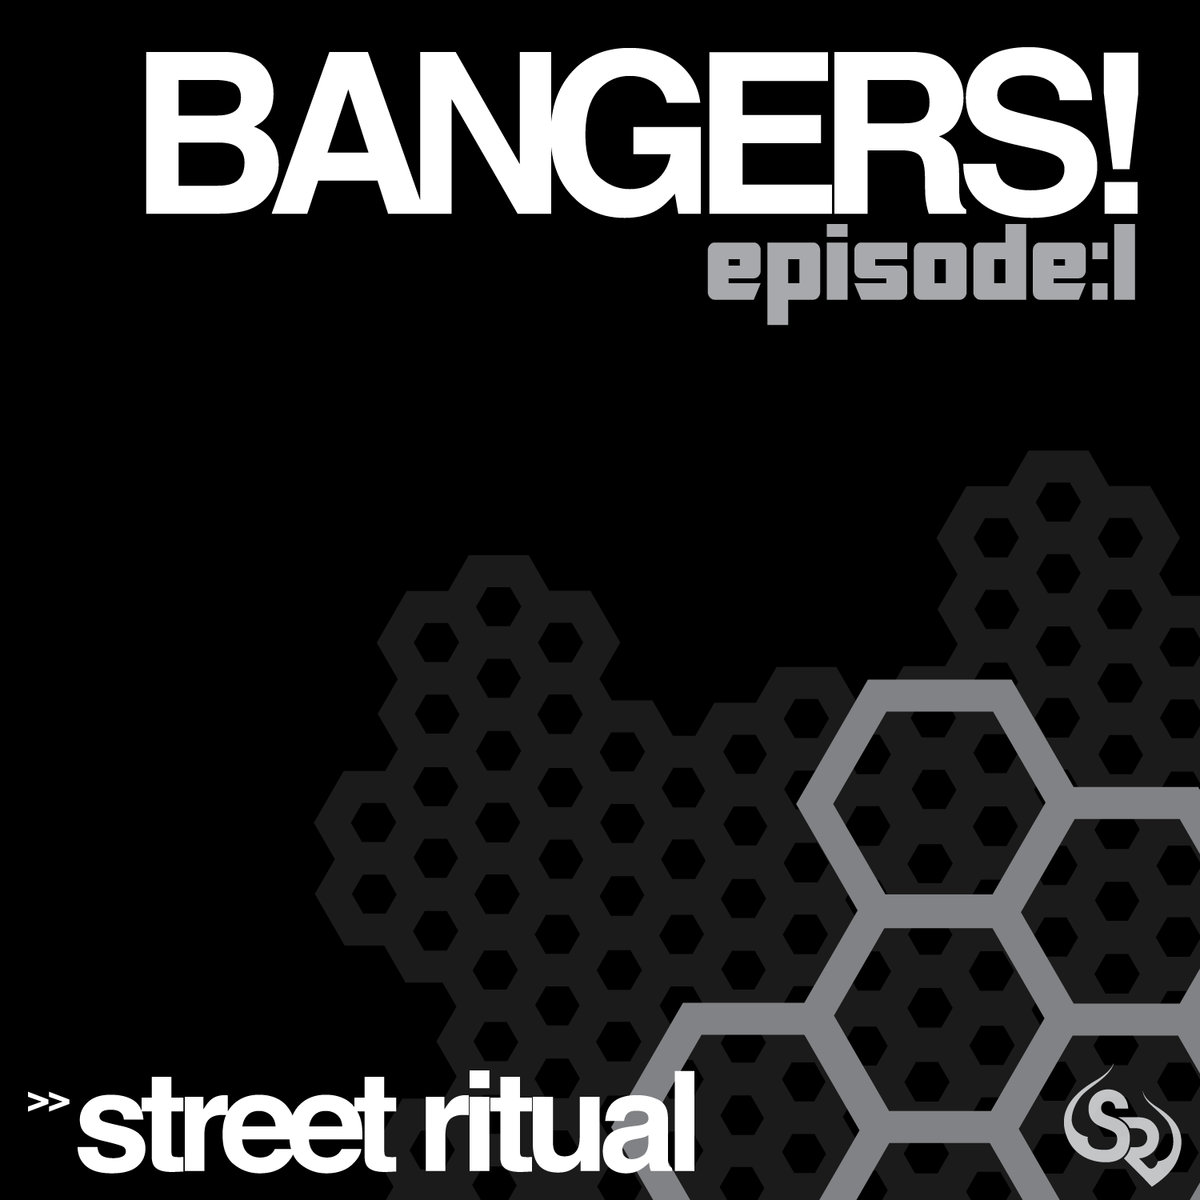 Elfkowitz - Welcome Back @ 'Various Artists - Bangers! Episode:1' album (bass, electronic)